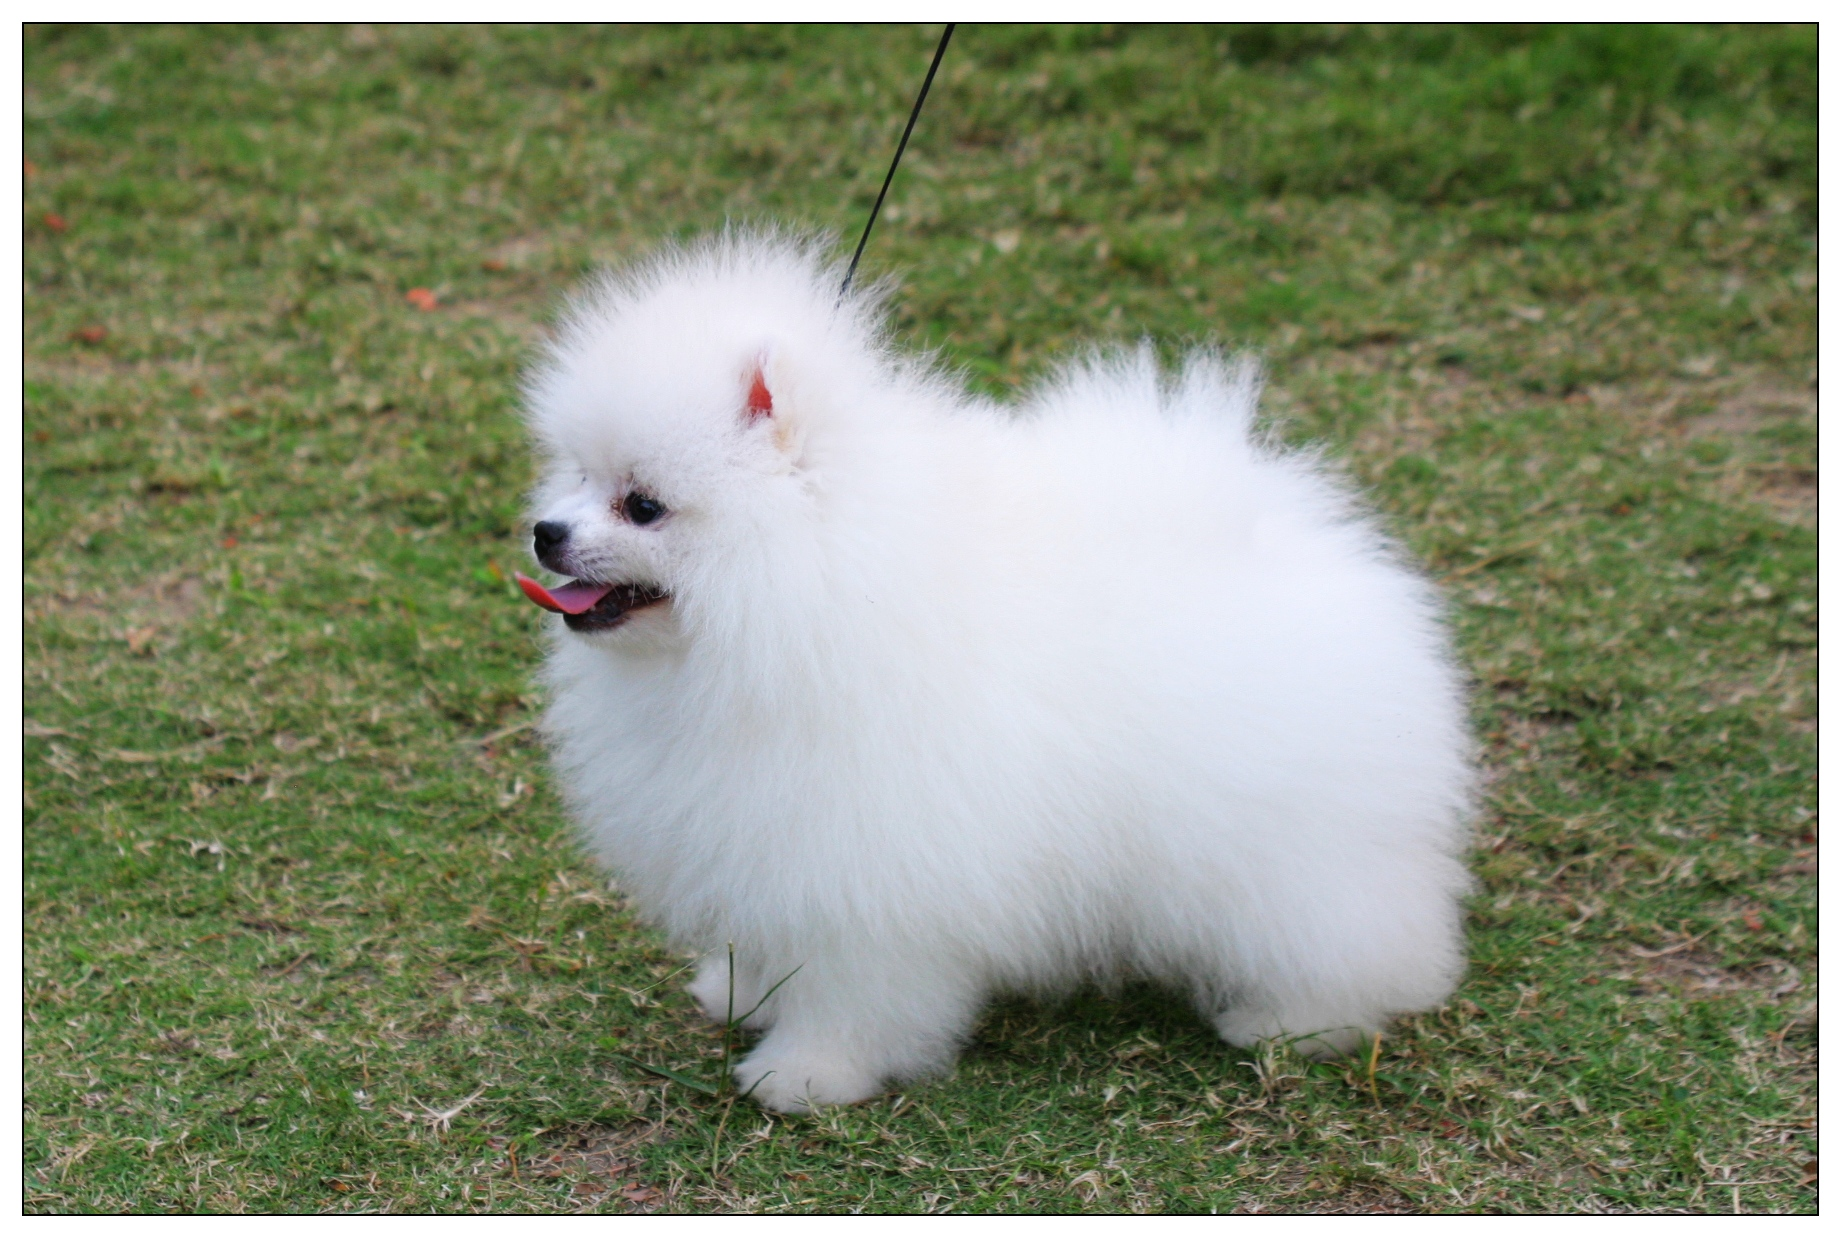 White Pomeranian. Female, age of 3 months